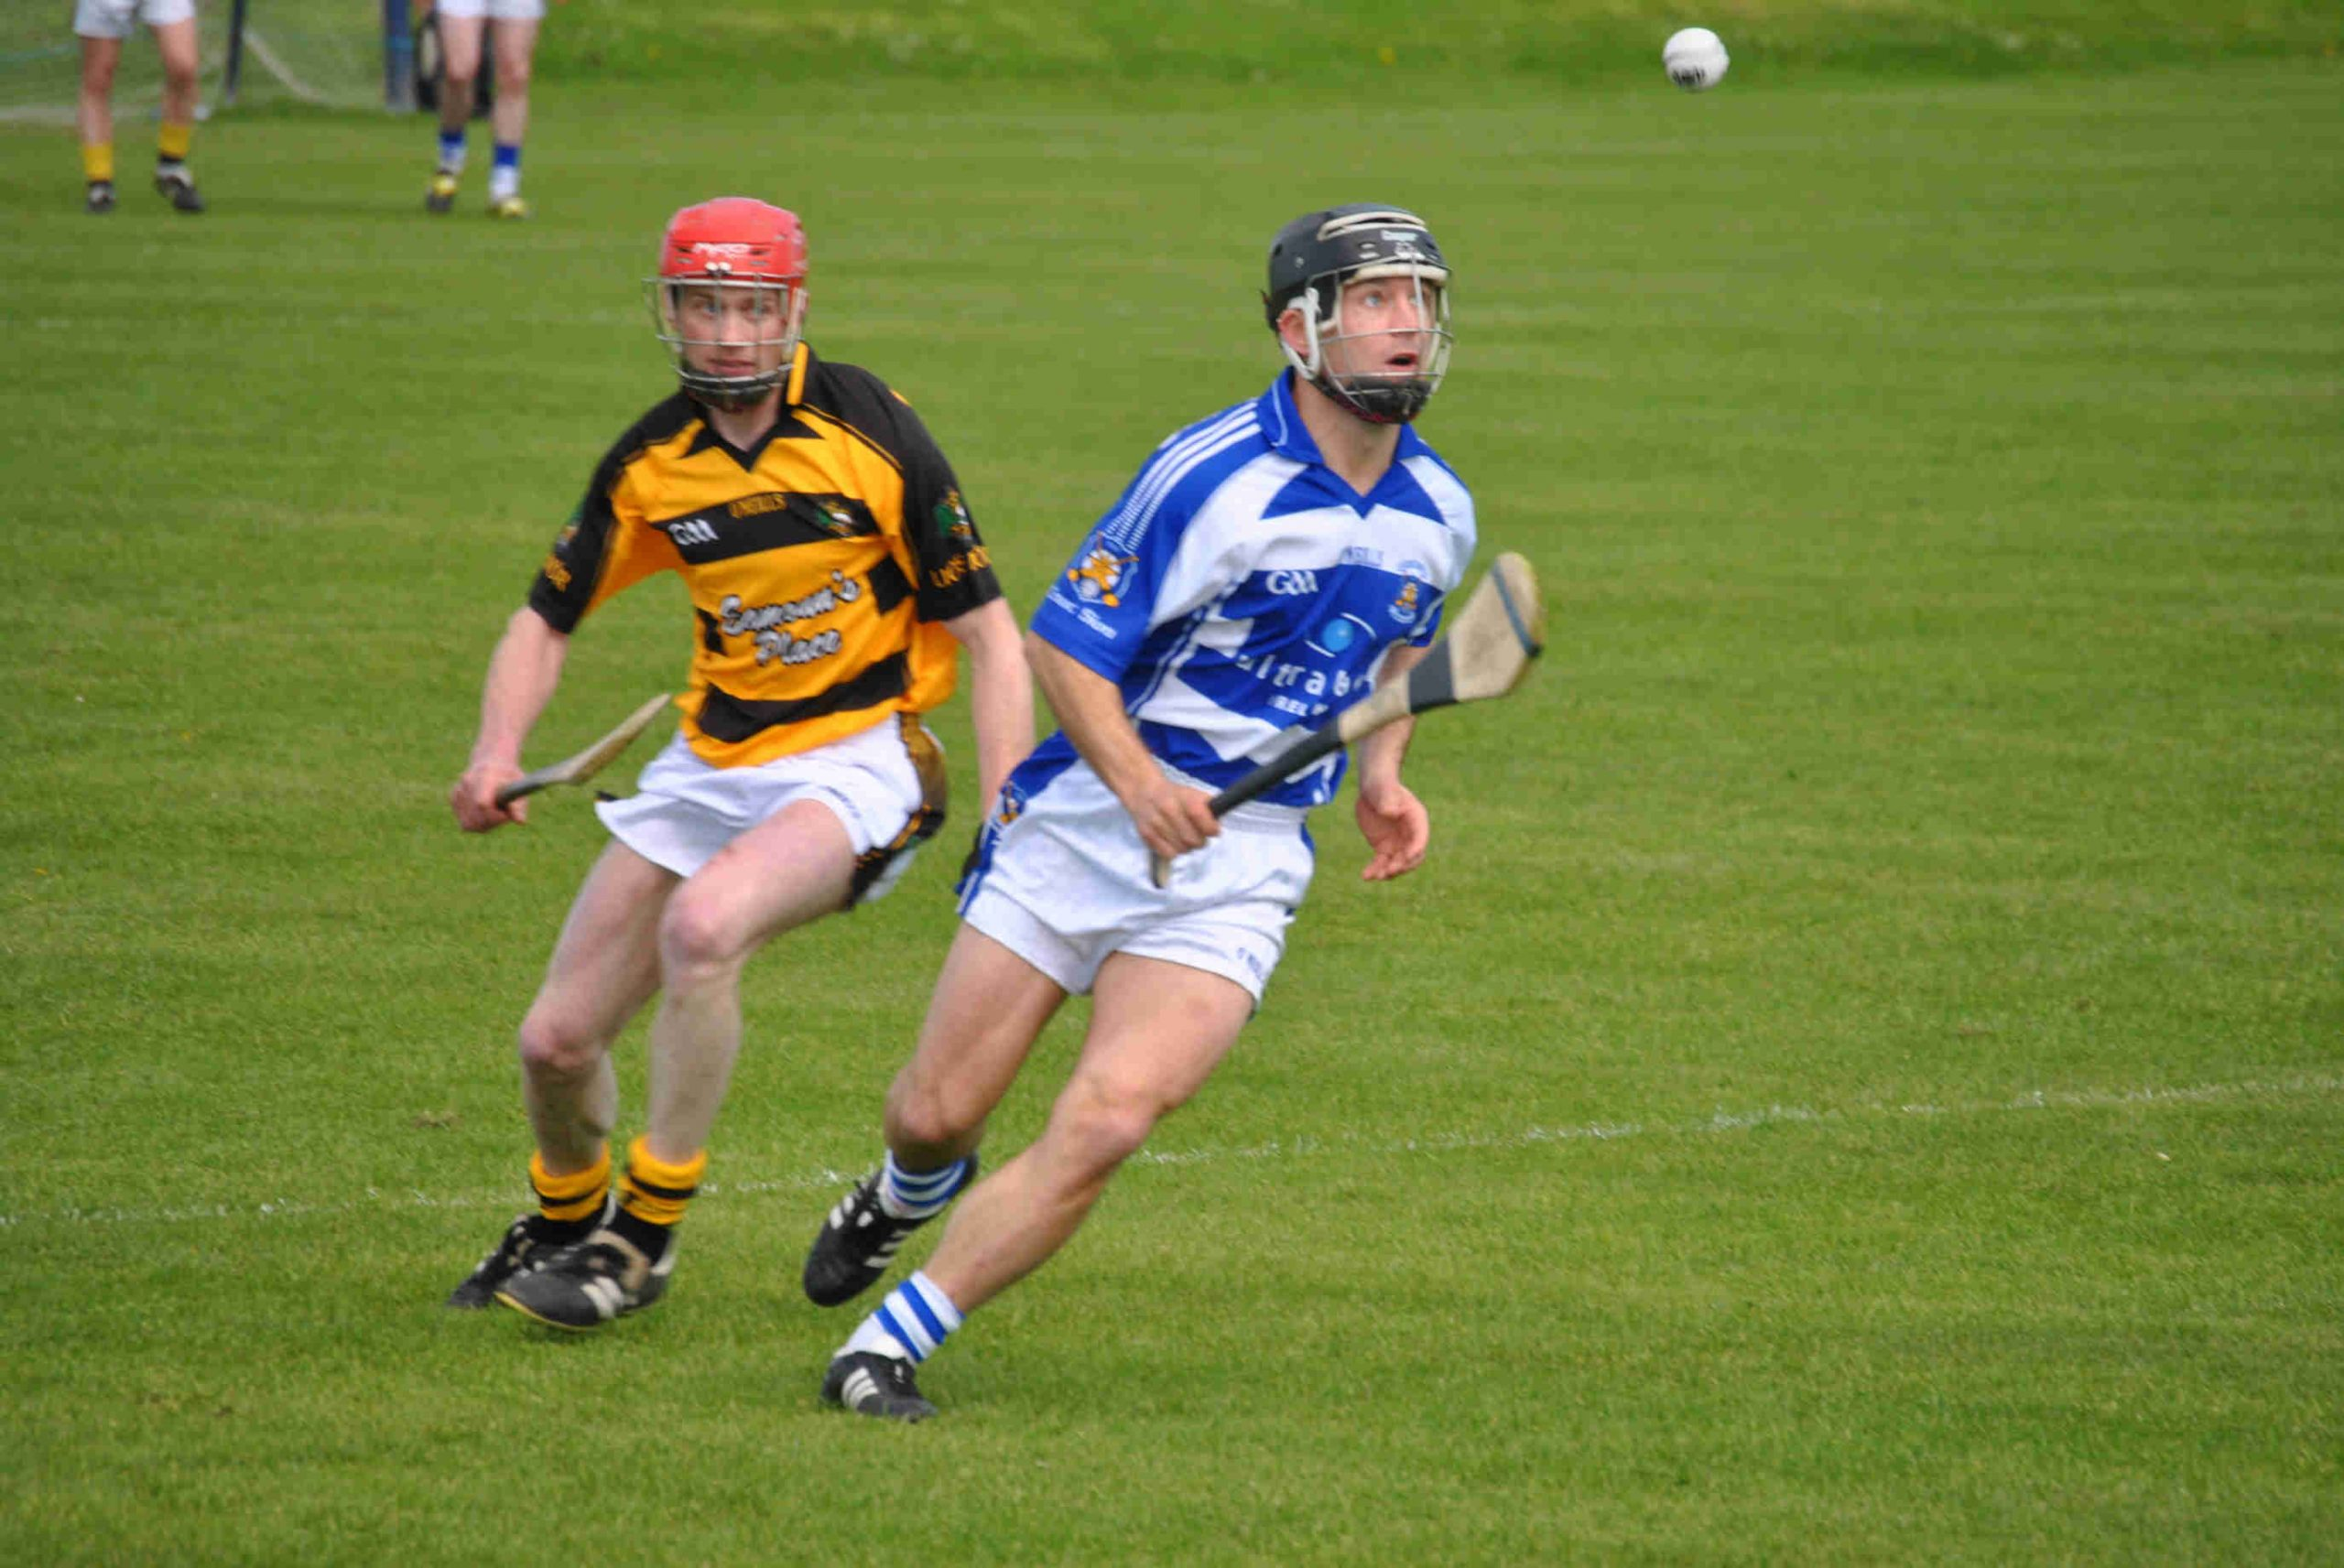 Three games down for decision this evening to complete the group stages of the County Senior hurling Championship